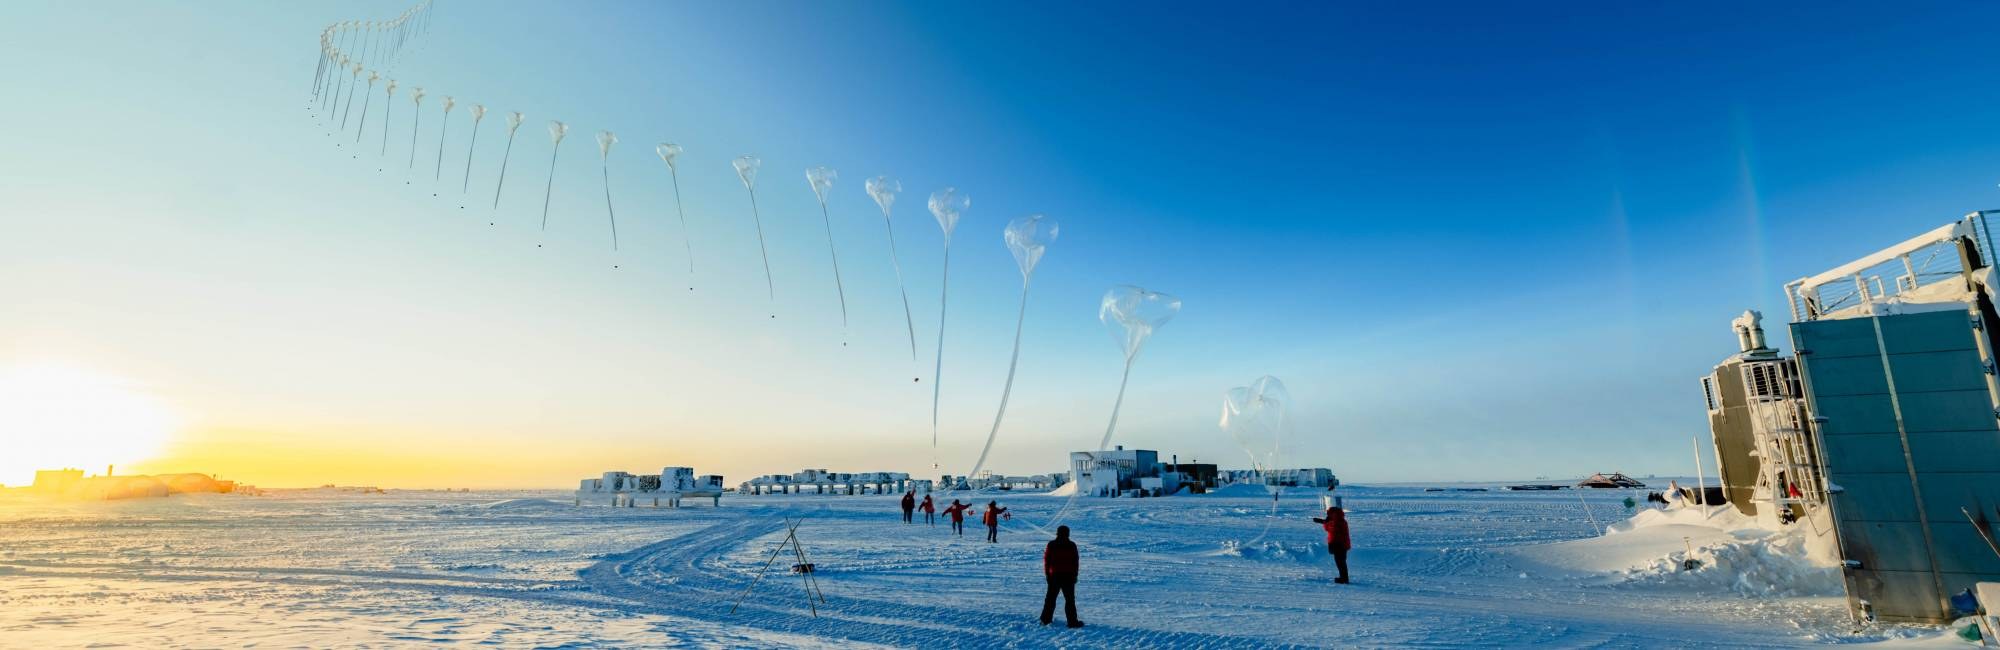 Timelapse photo of a NOAA ozonezonde, an instrument used to monitor the Antarctic ozone hole, is released by scientists and carried aloft over the South Pole on a weather balloon.